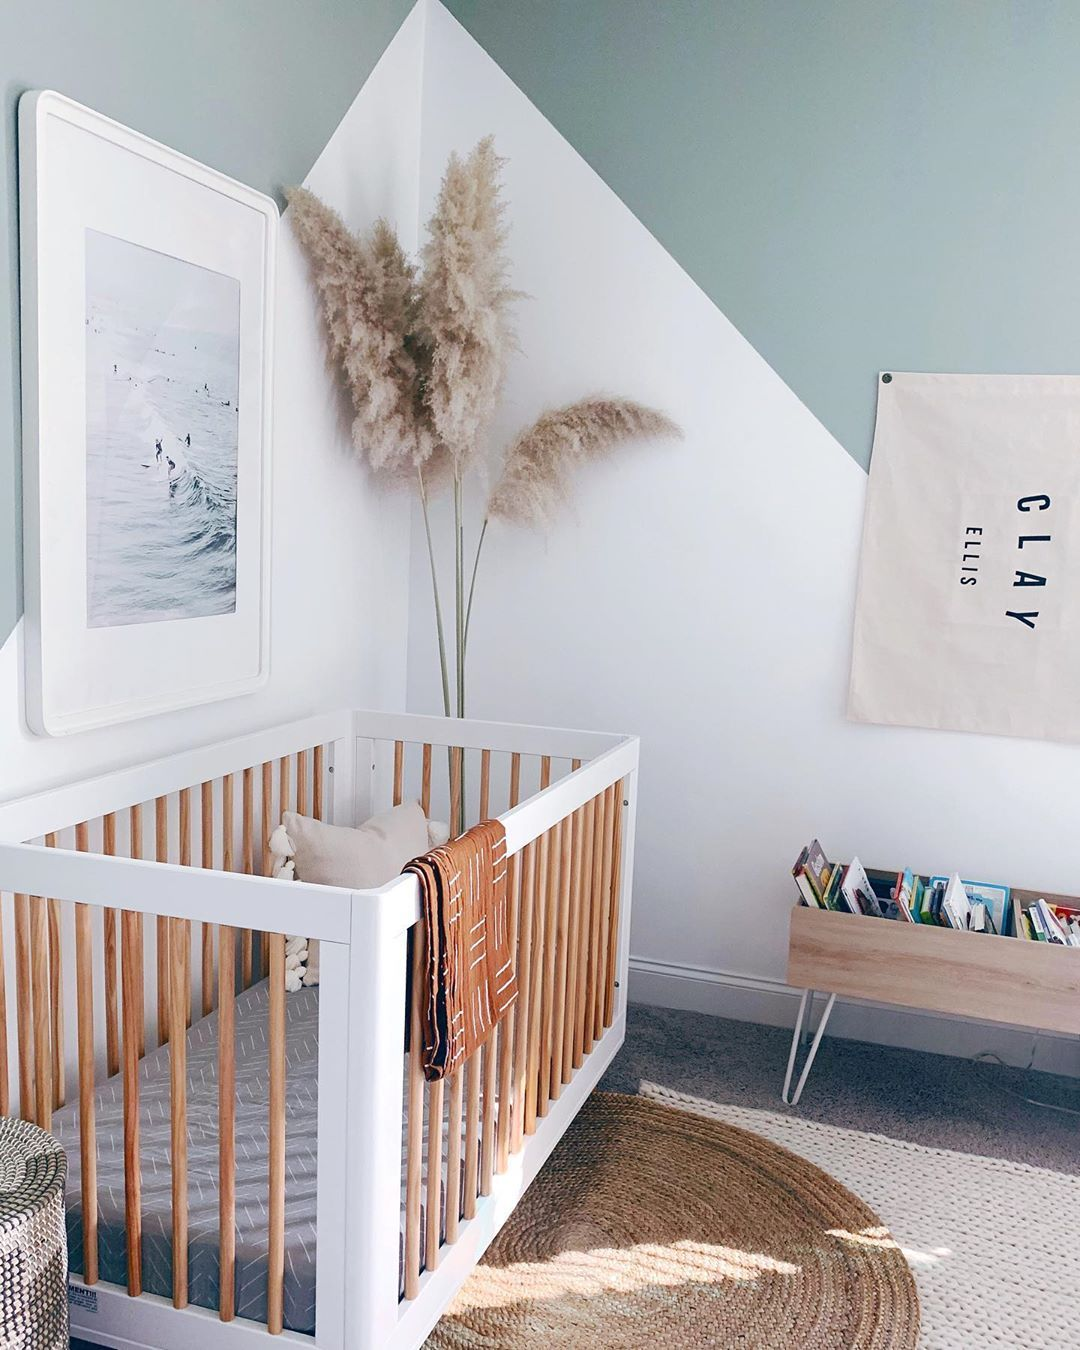 """Adrienne Possien on Instagram: """"We can't wait to meet sweet baby boy! Nursery is set and ready for his arrival.……………………………………………………………""""Children are a heritage from the…"""""""